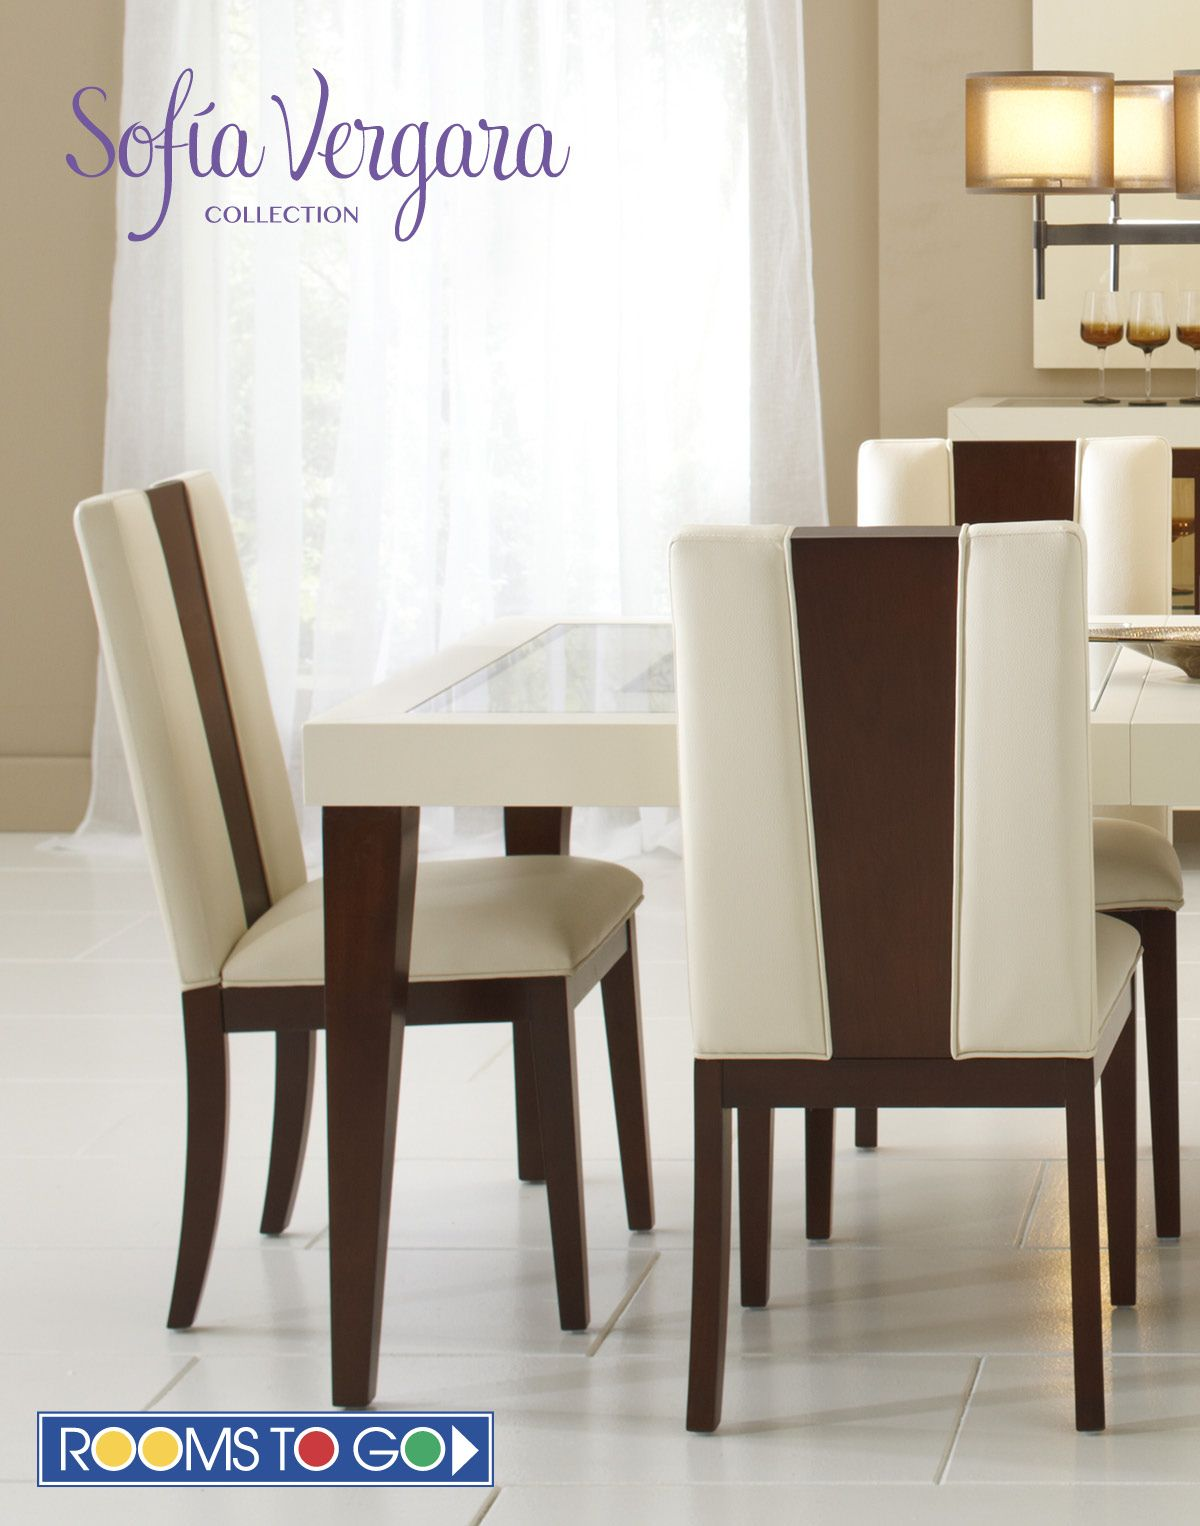 Clean Lines Contemporary Styling And Quality Construction The Sofia Veragra Savona Dining Collection Offe Dining Room Sets Affordable Dining Room Sets Dining #sofia #vergara #living #room #set